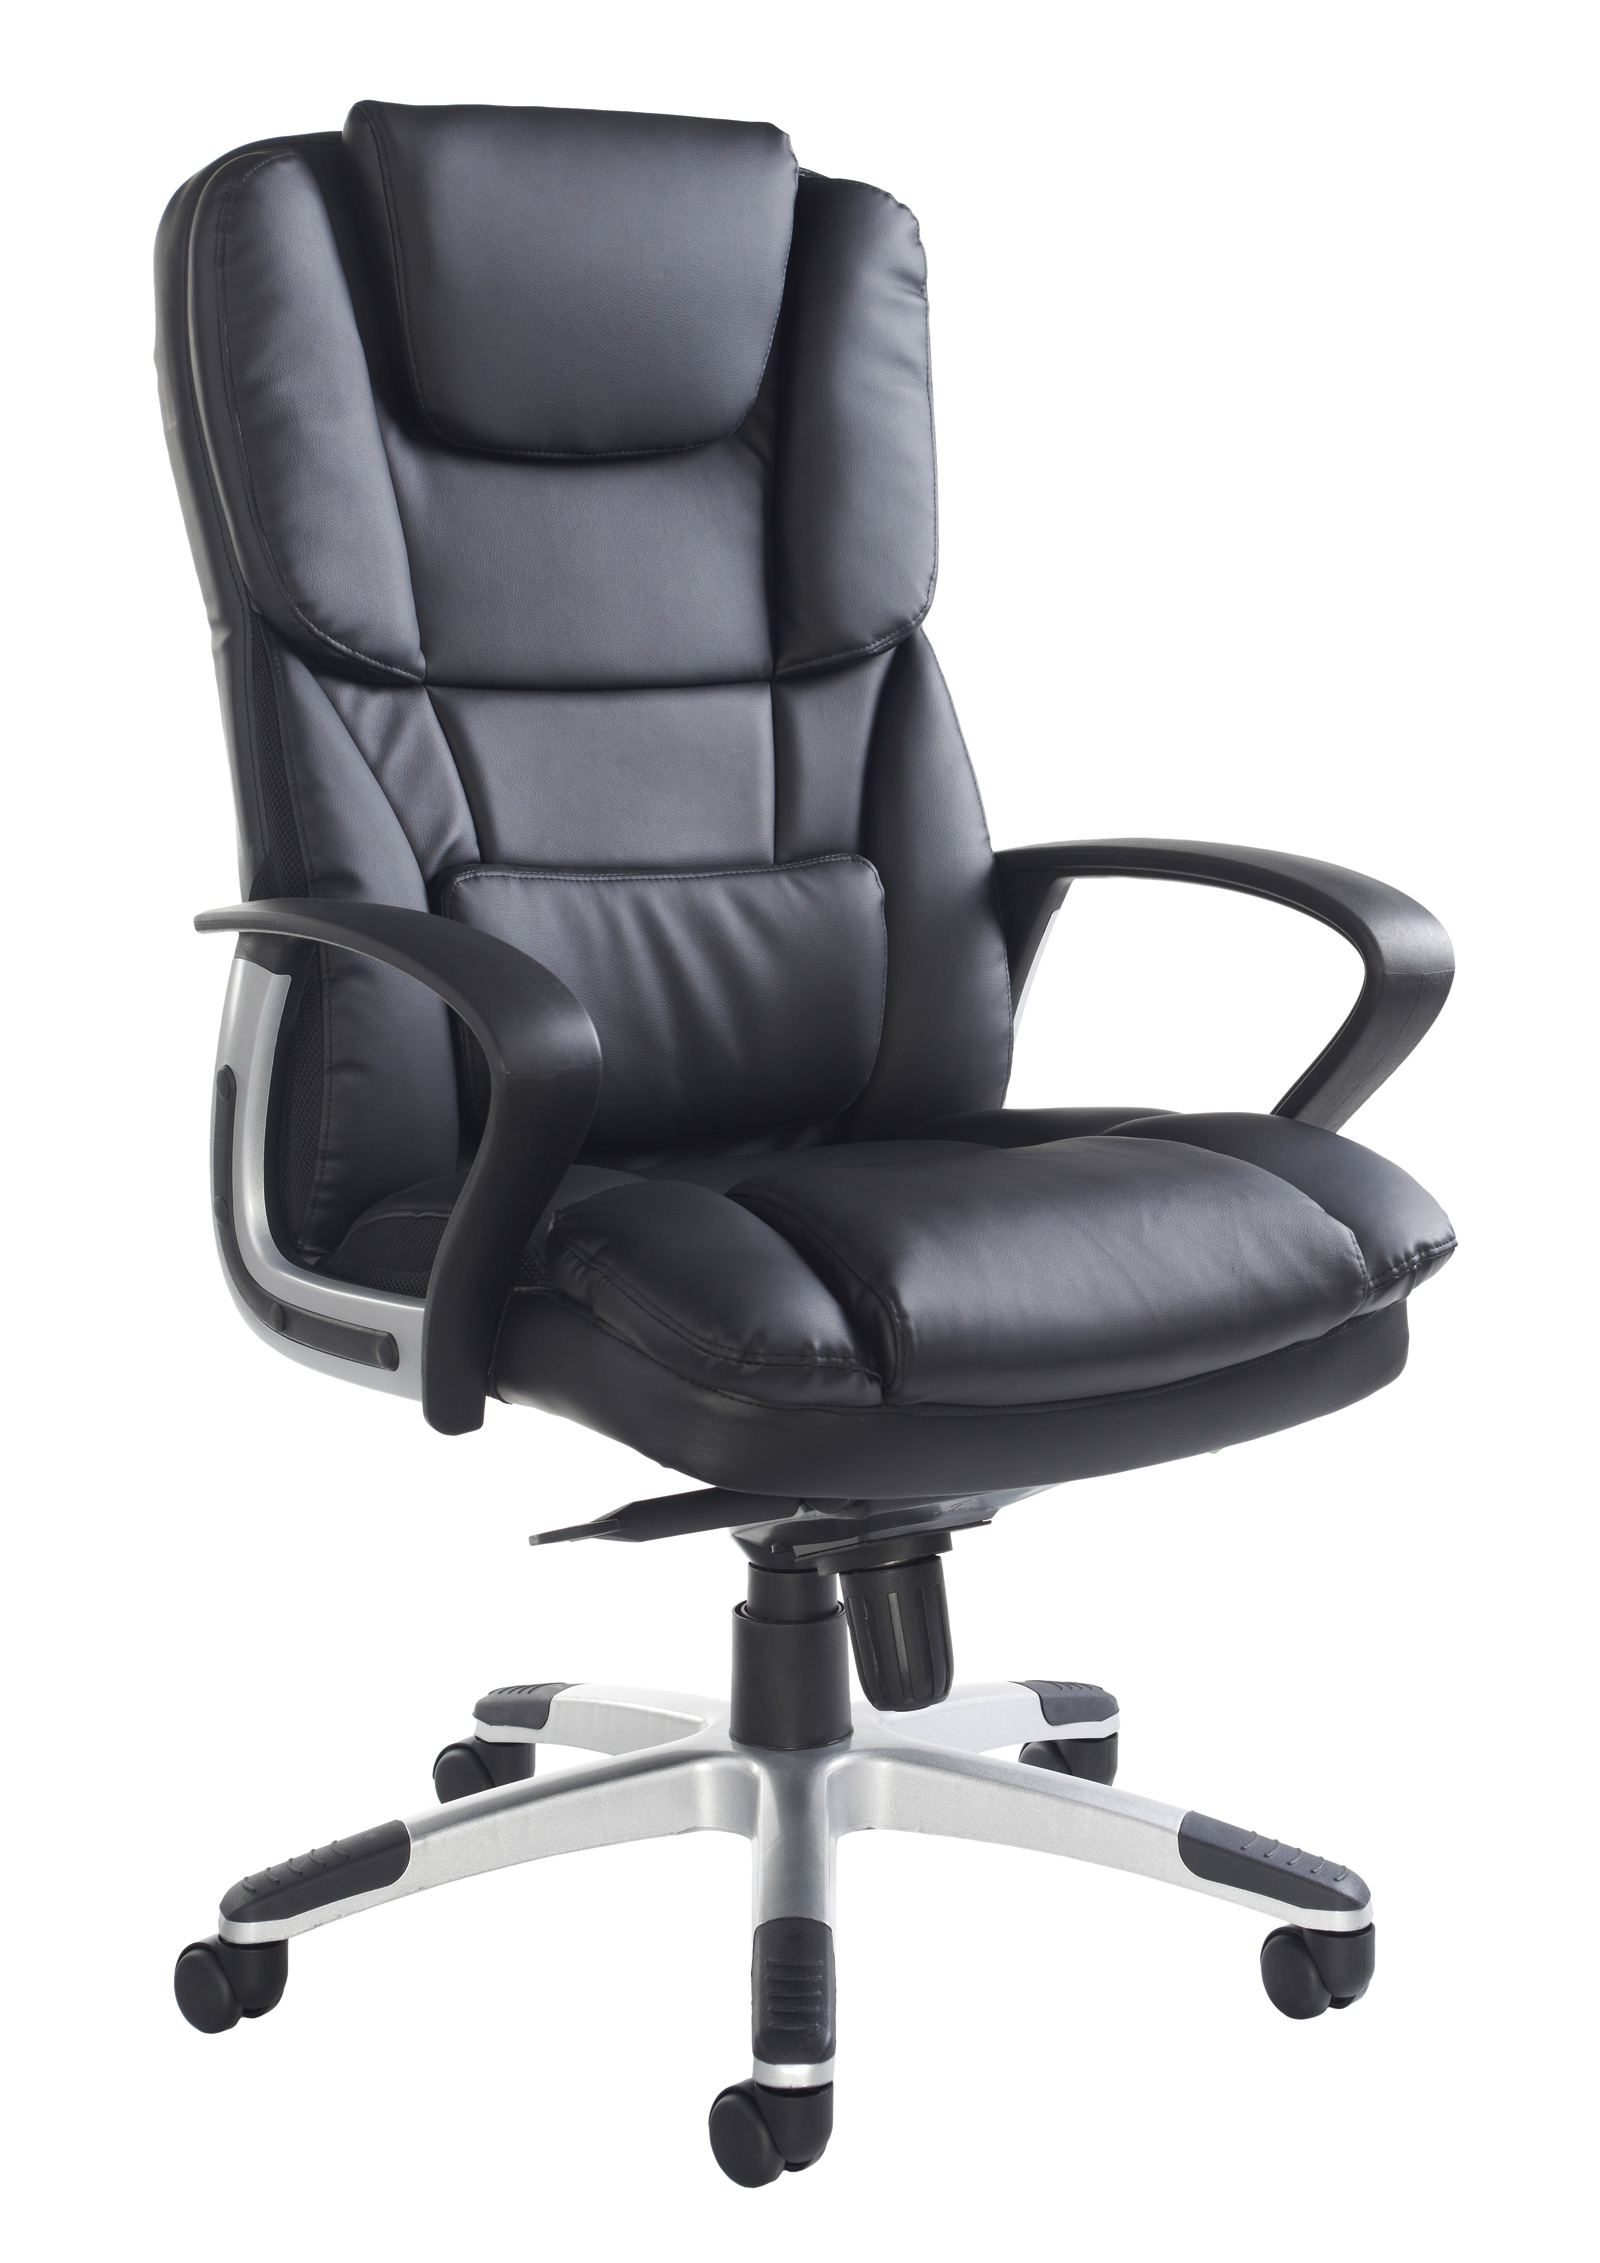 Palermo high back executive chair - black